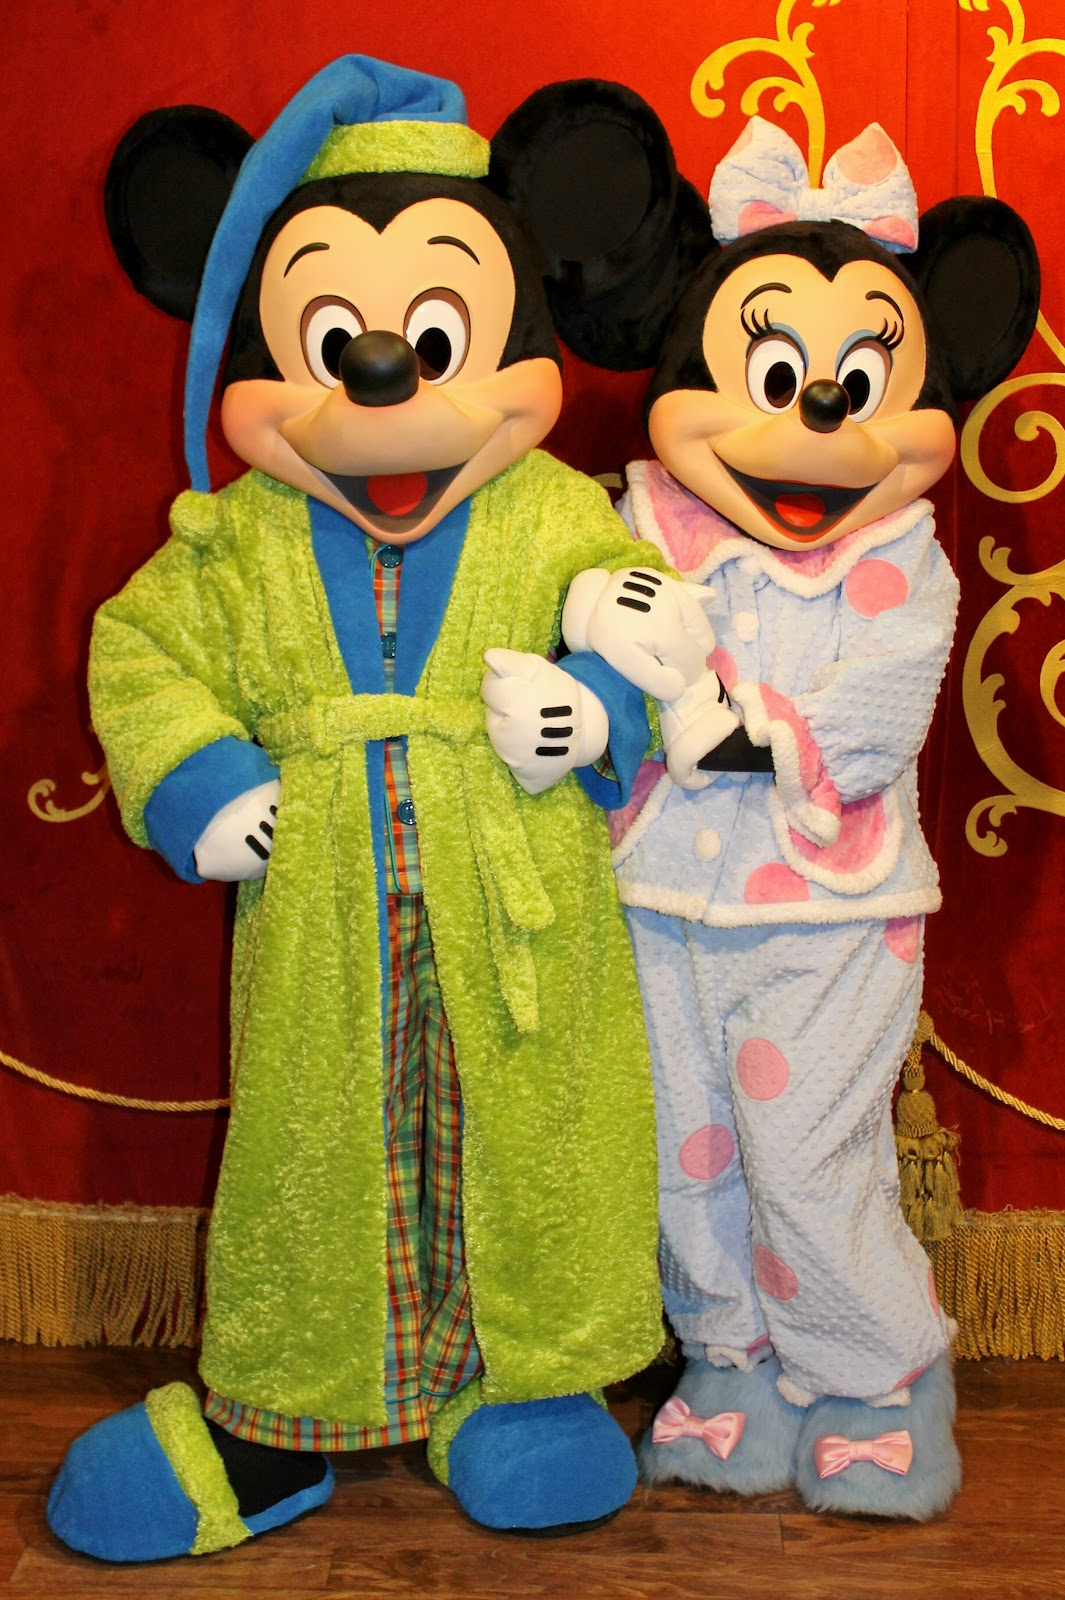 Unofficial disney character hunting guide one more disney day character hunt - Minni et mickey ...